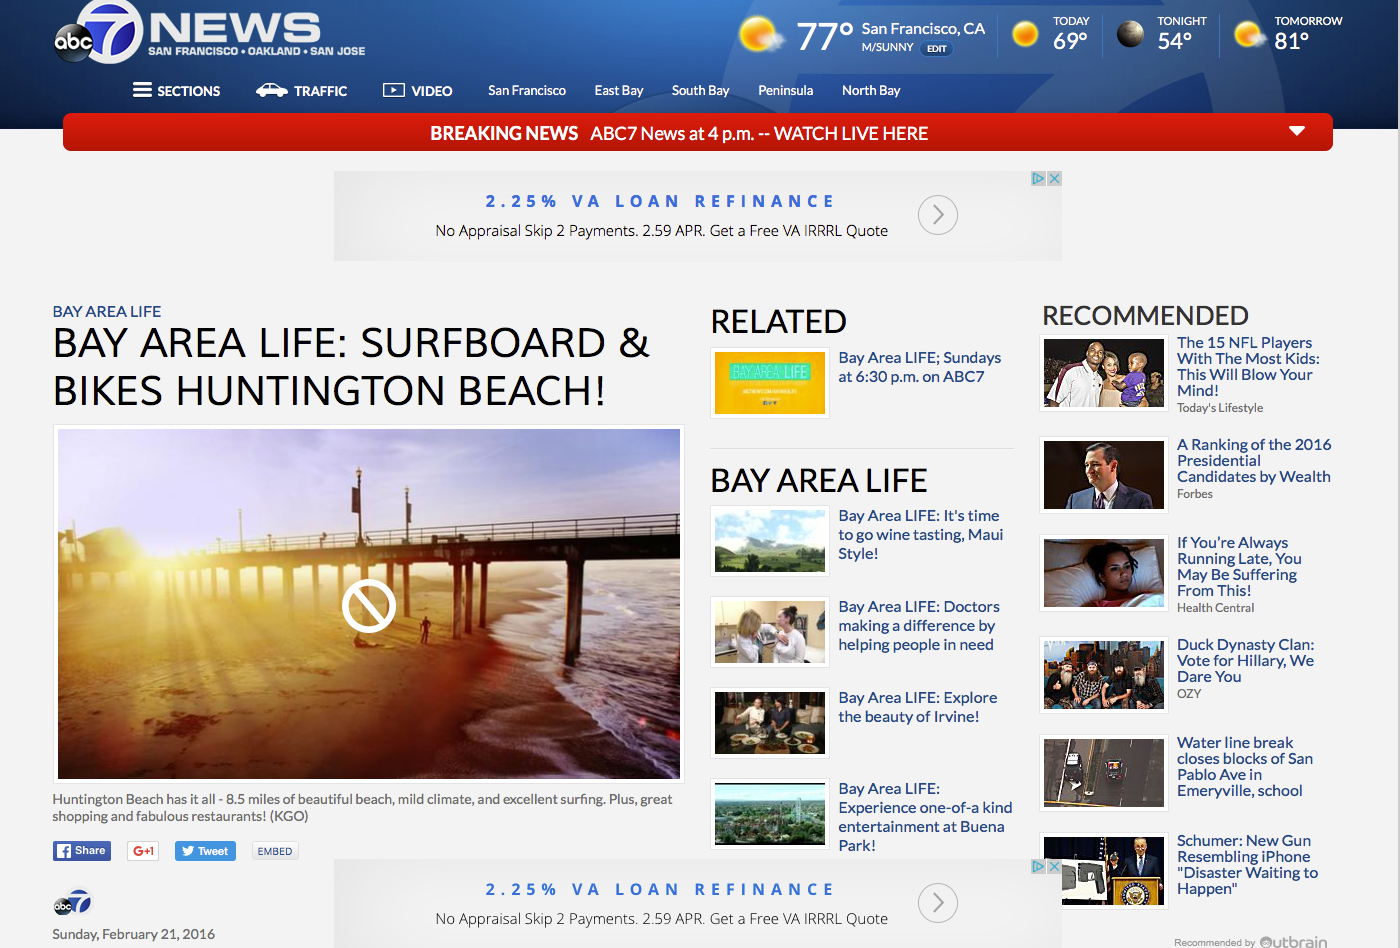 ABC NEWS Bay Area Life Surfboard Bike Rentals Huntington Beach Orange County